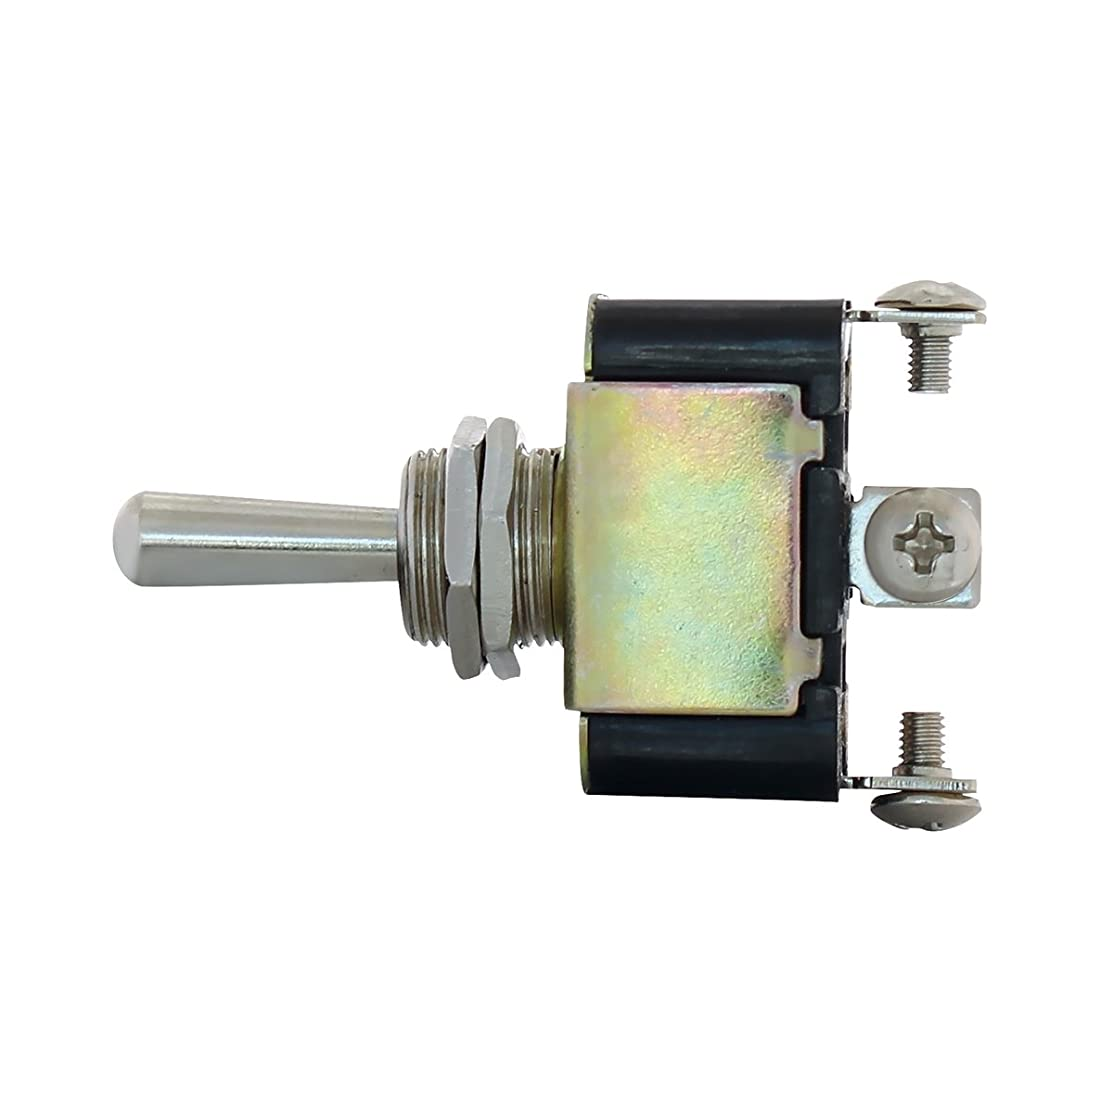 United Pacific 40002 3 PIN, 10 AMP - 12 VOLTS D.C, ON - OFF - ON METAL TOGGLE SWITCH W/ 3 SCREW TERMINALS